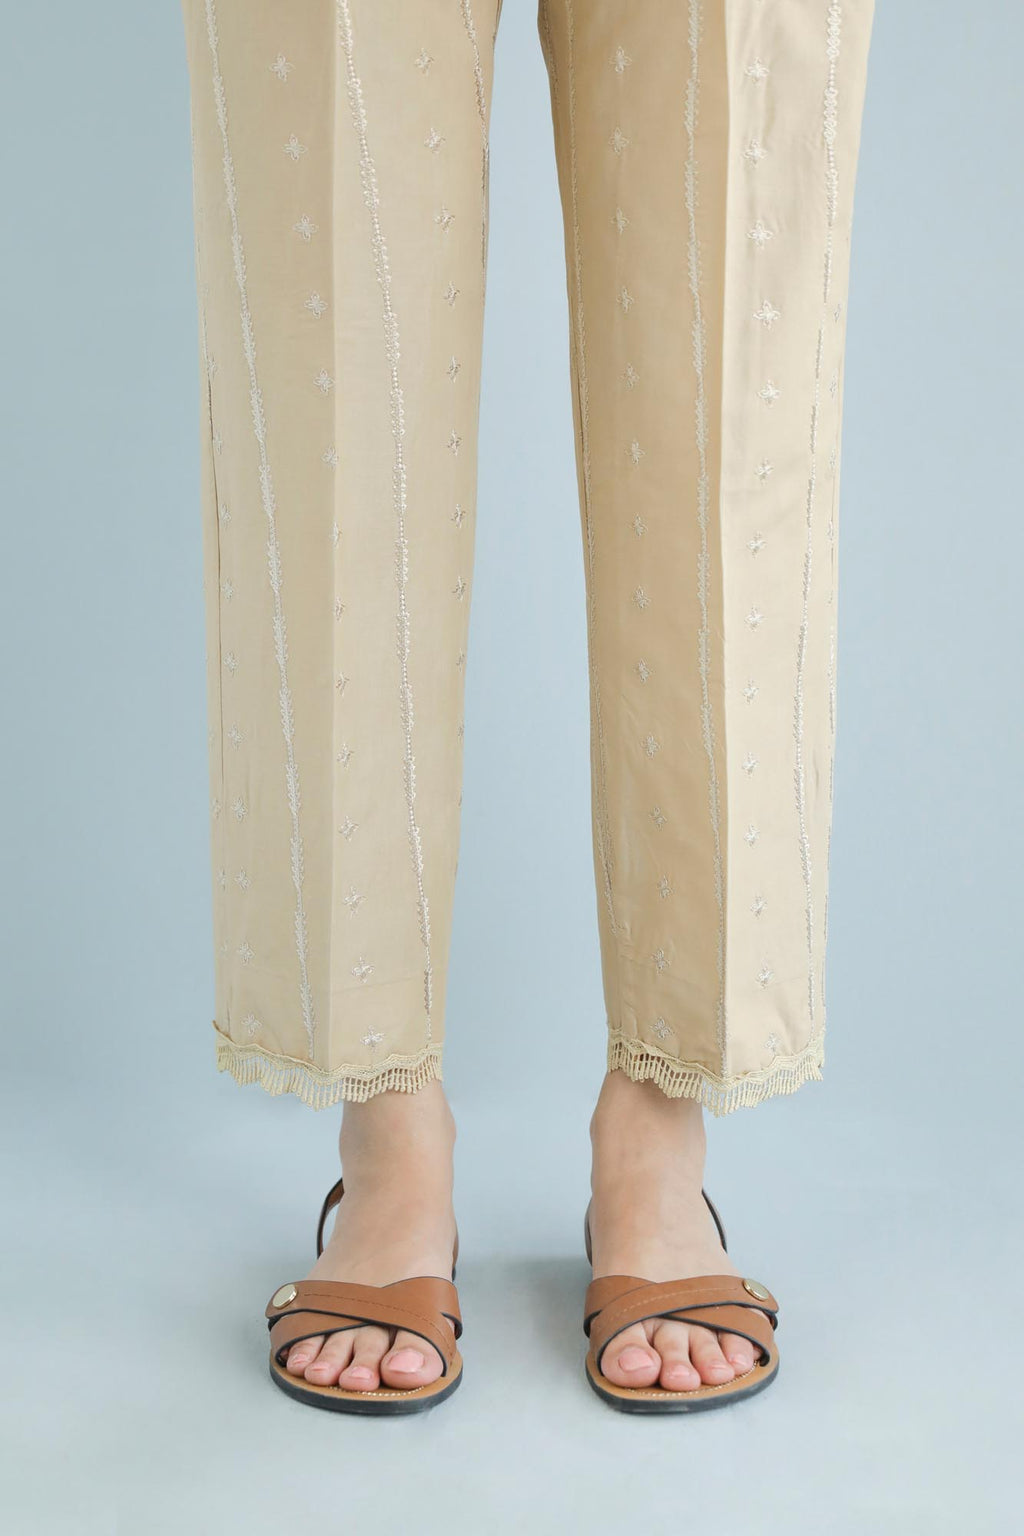 Boutique Trouser (WBB101672) - Ethnic by Outfitters